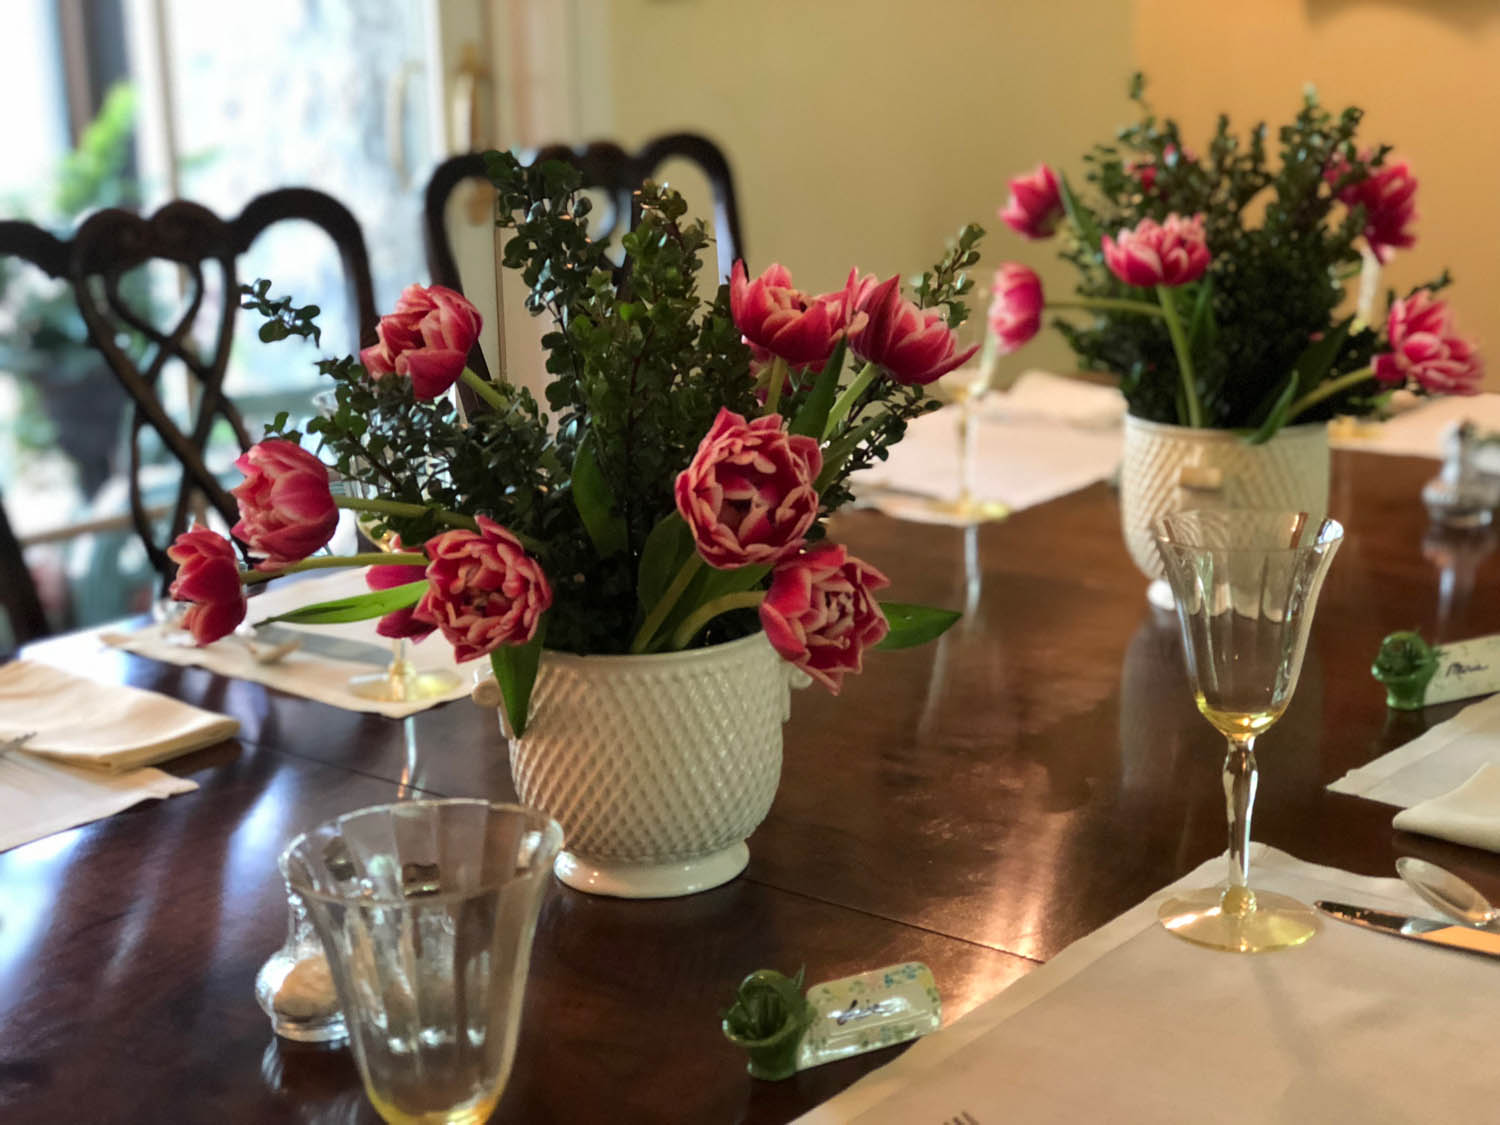 Dining table with floral arrangements and wine glasses